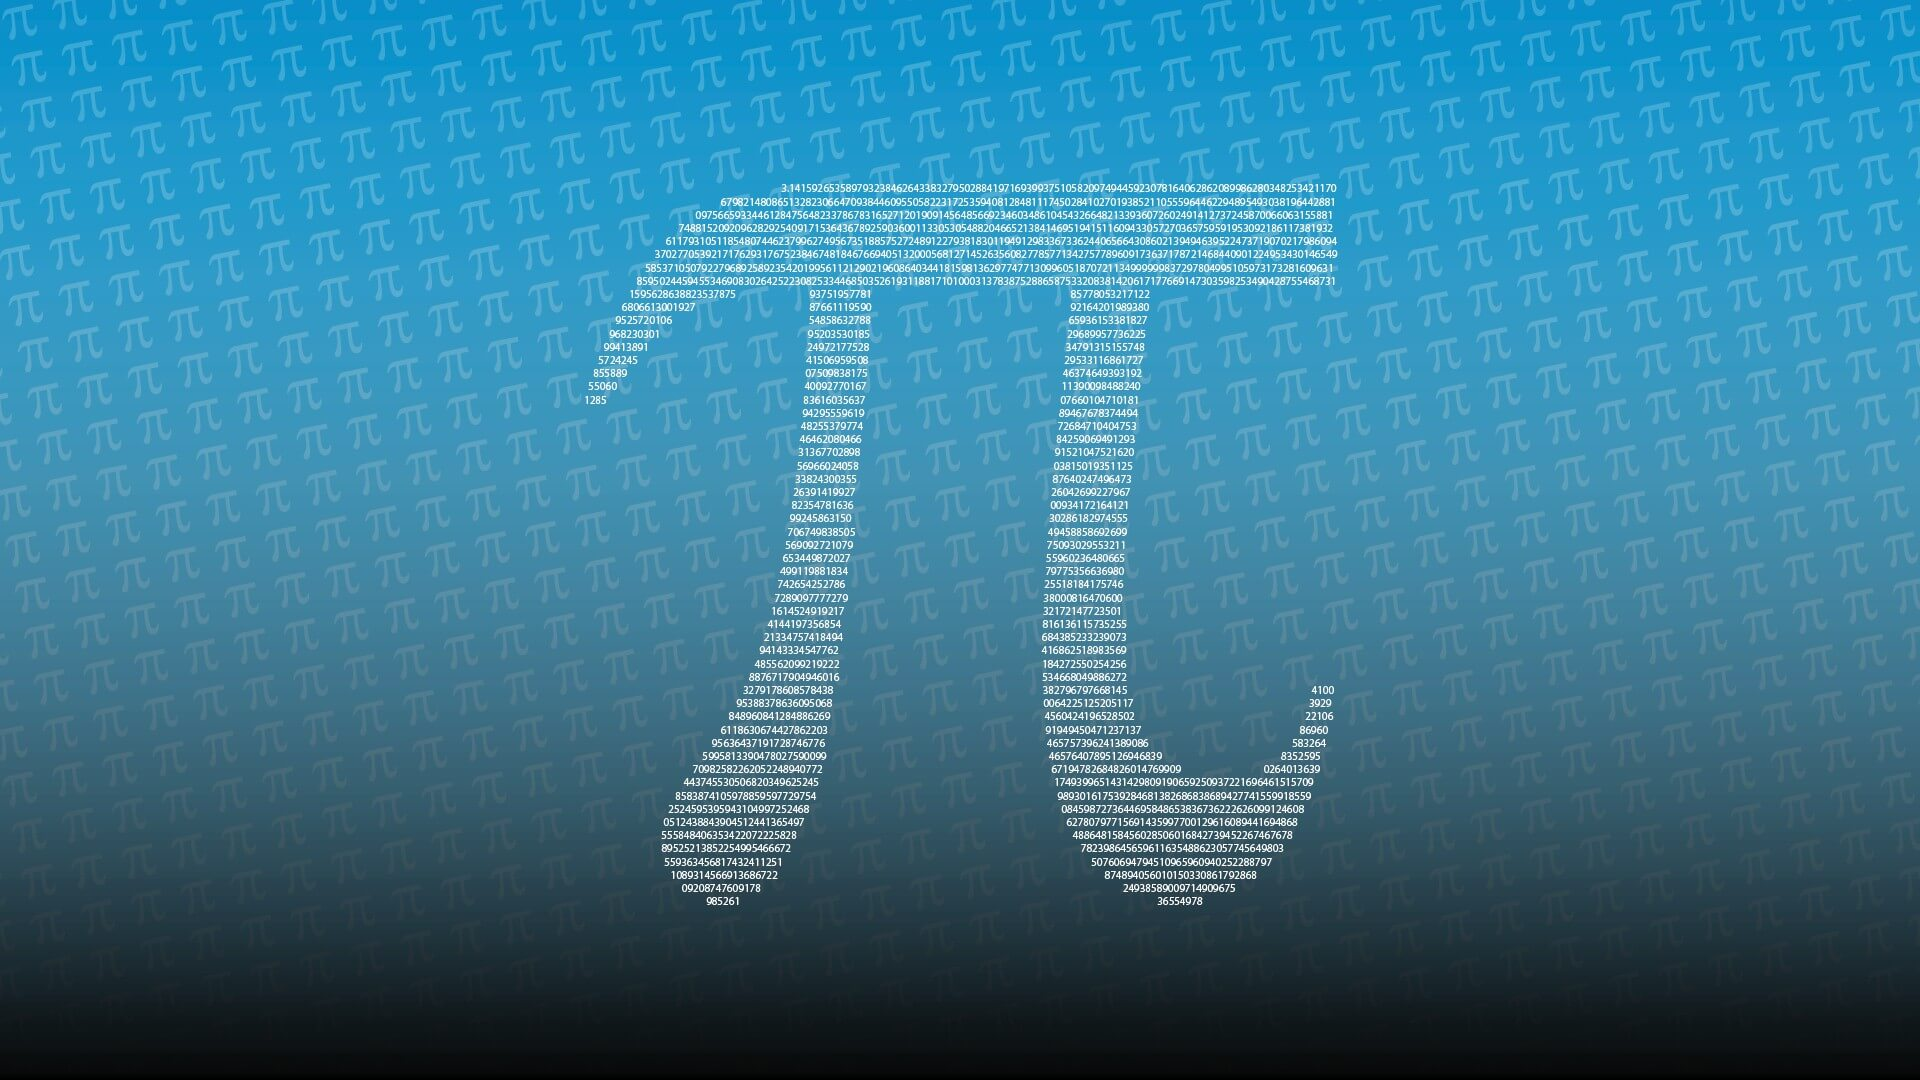 pi day greek symbol wallpaper hd